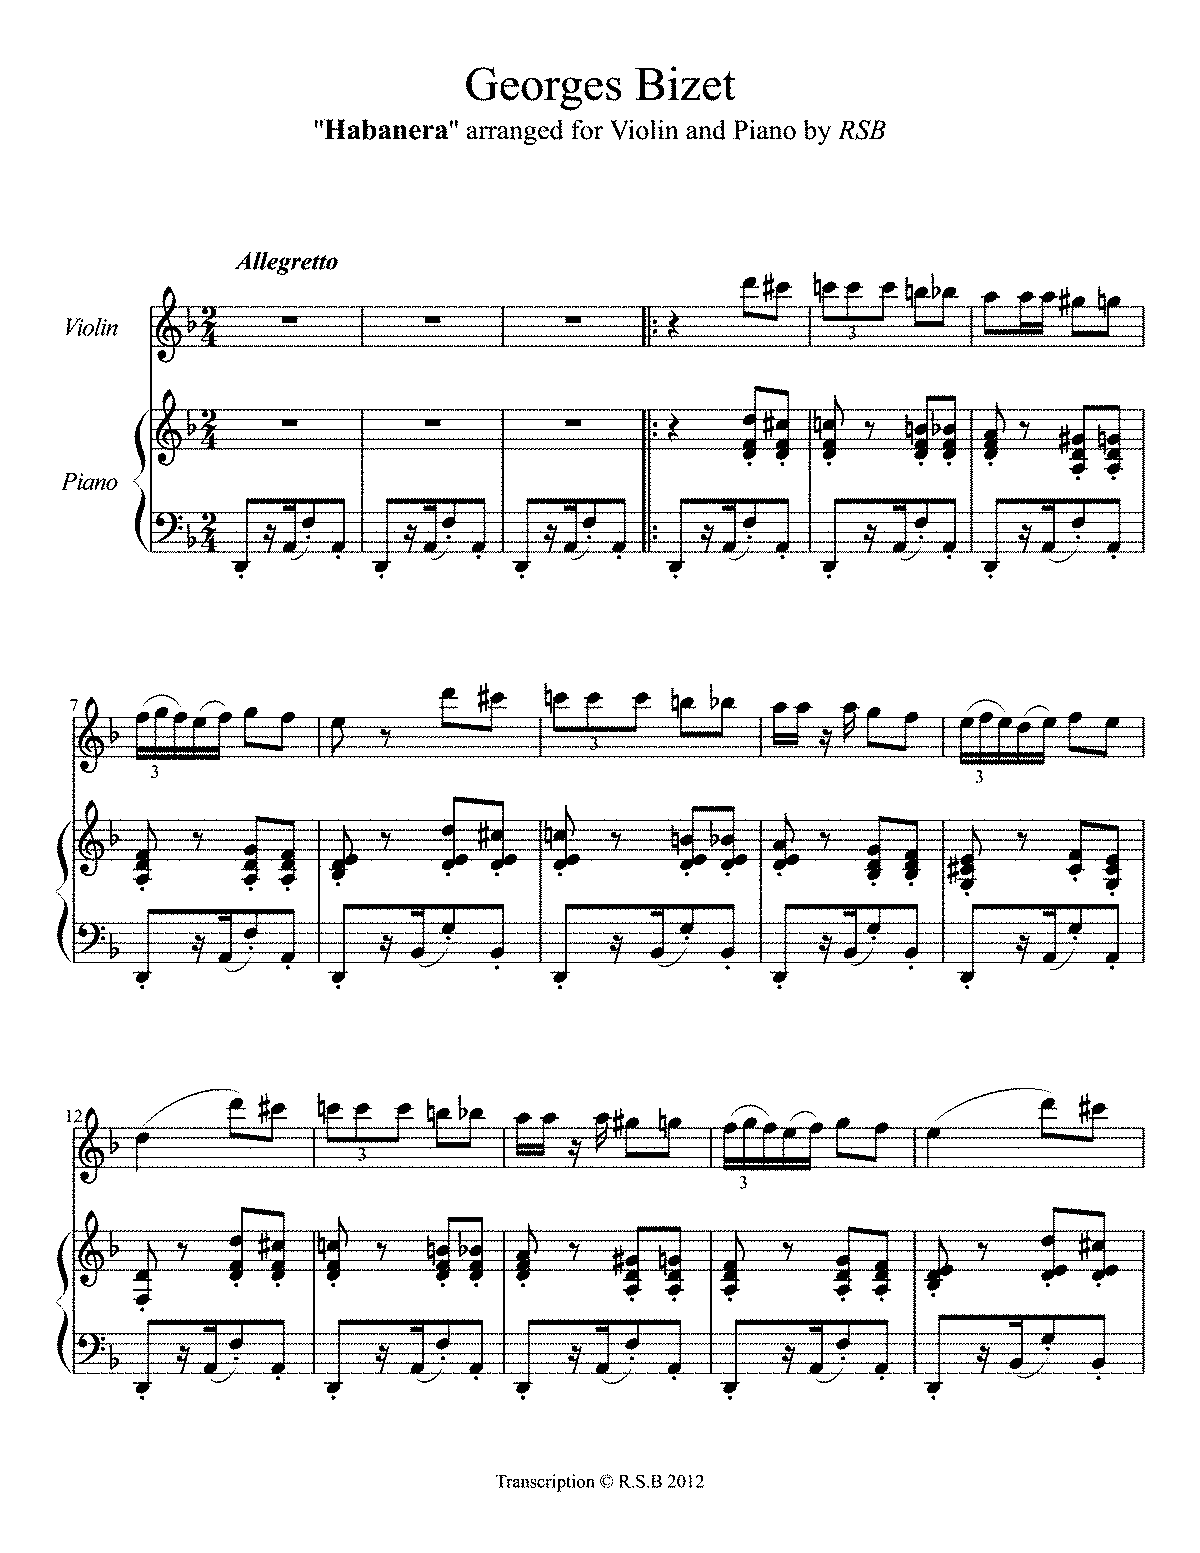 PMLP15769-Bizet Habanera for Violin and Piano.pdf